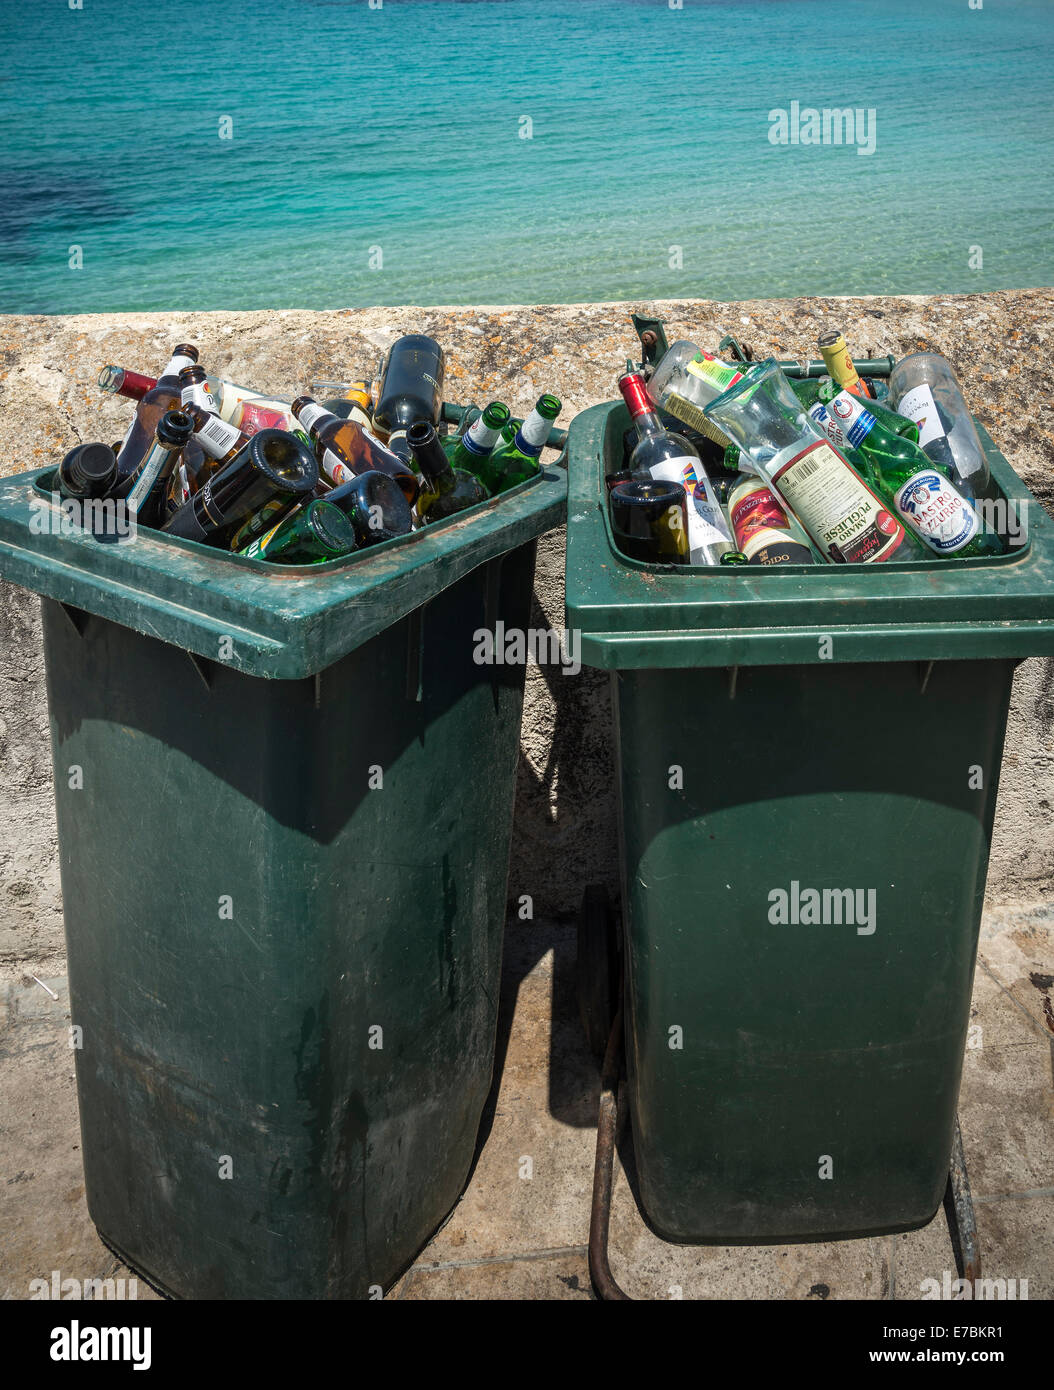 Discarded bottles of alcohol in dustbins by the sea. - Stock Image